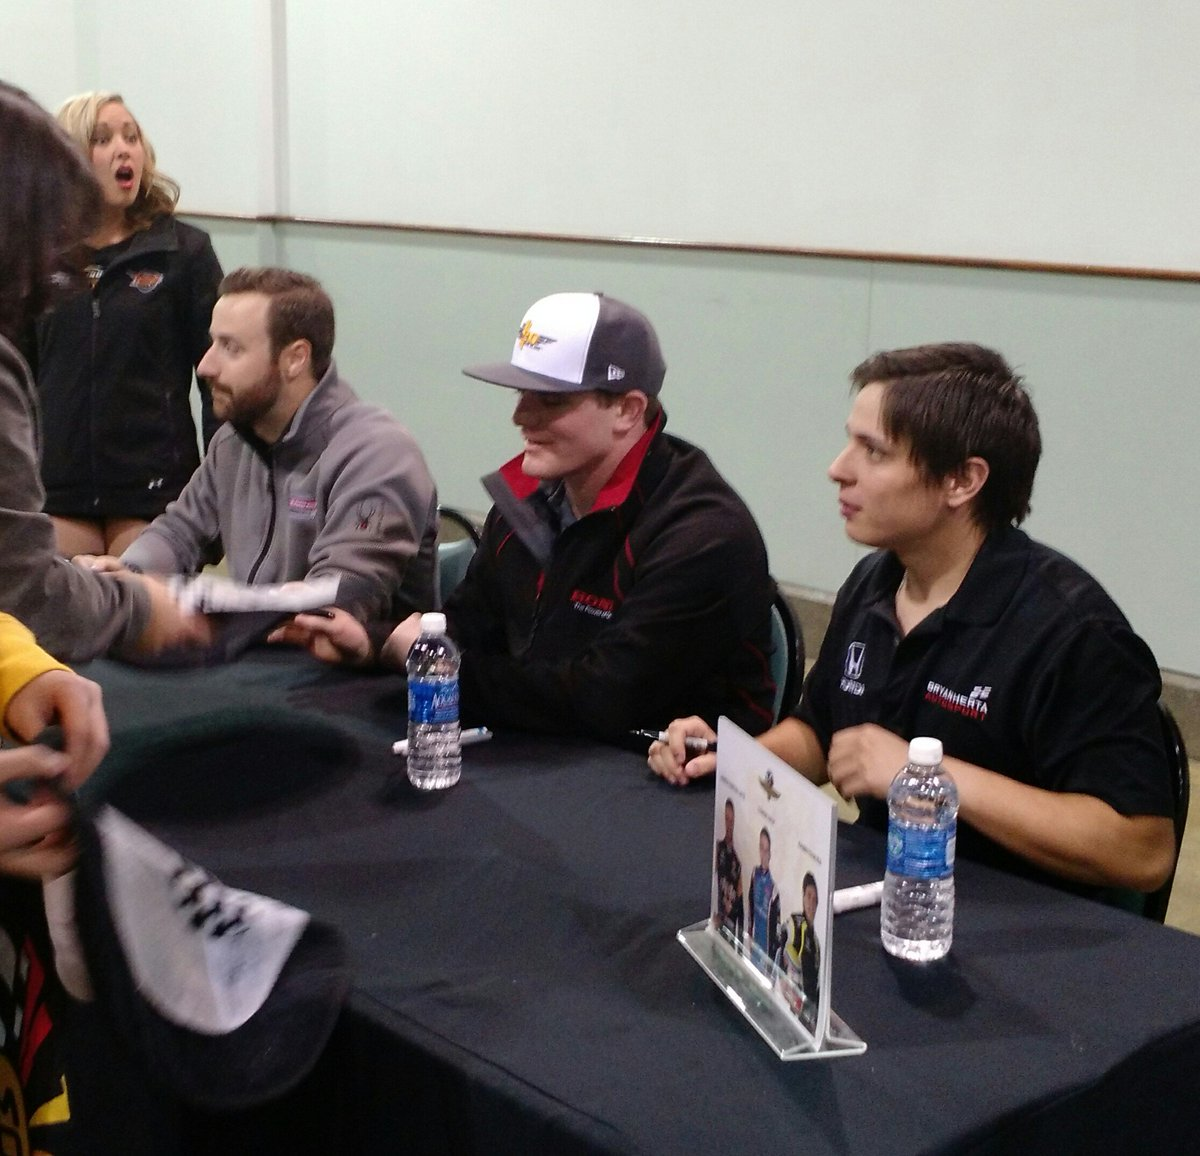 At @IndyFuel's @IMS Night, @IndyCar drivers @Hinchtown, @ConorDaly22 & @GabbyChaves sign autographs for fans. https://t.co/Xa0zmnZe3N